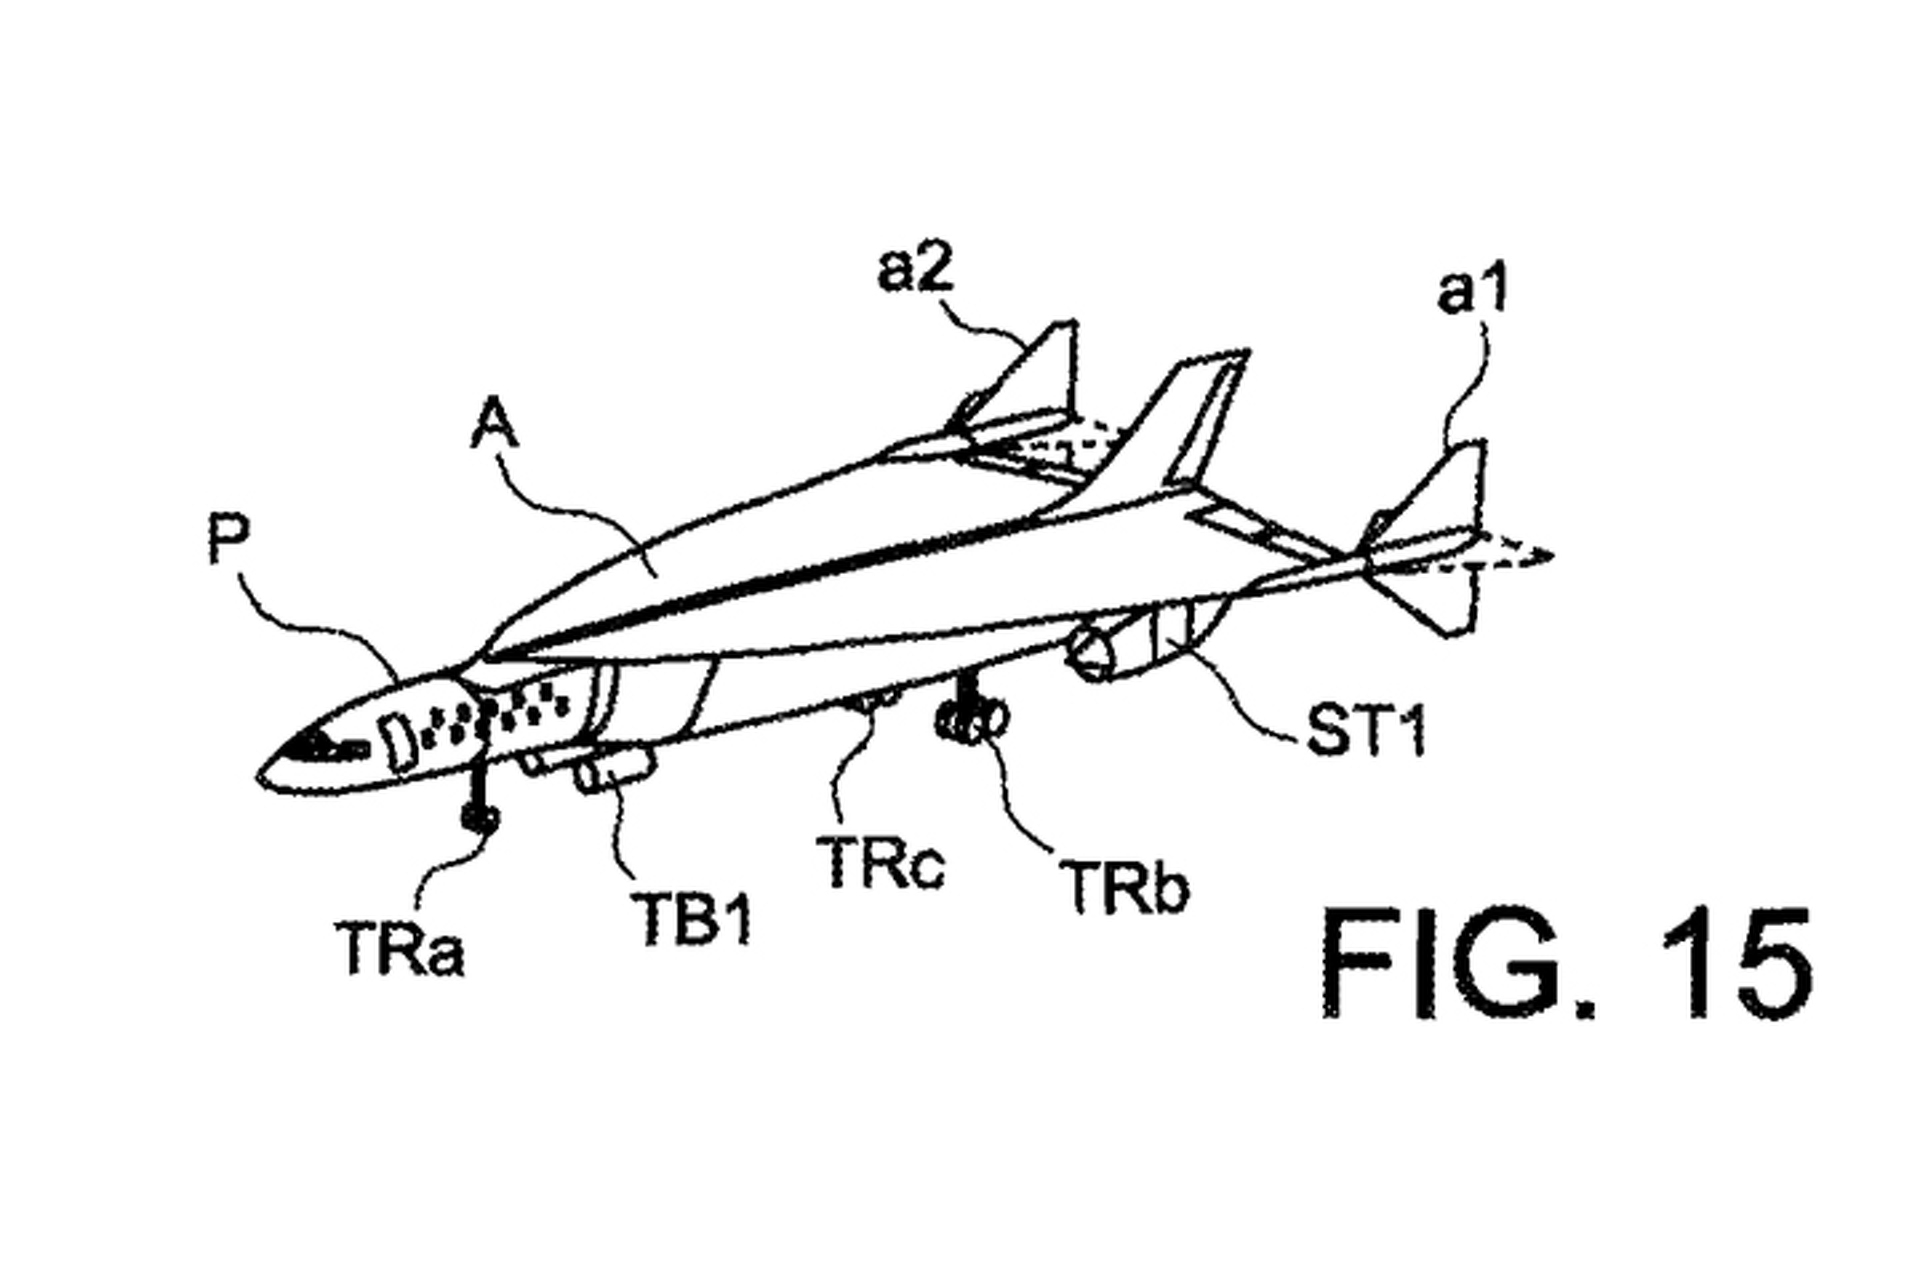 Airbus Patent Reveals a New Jet Capable of Over 3,000 MPH